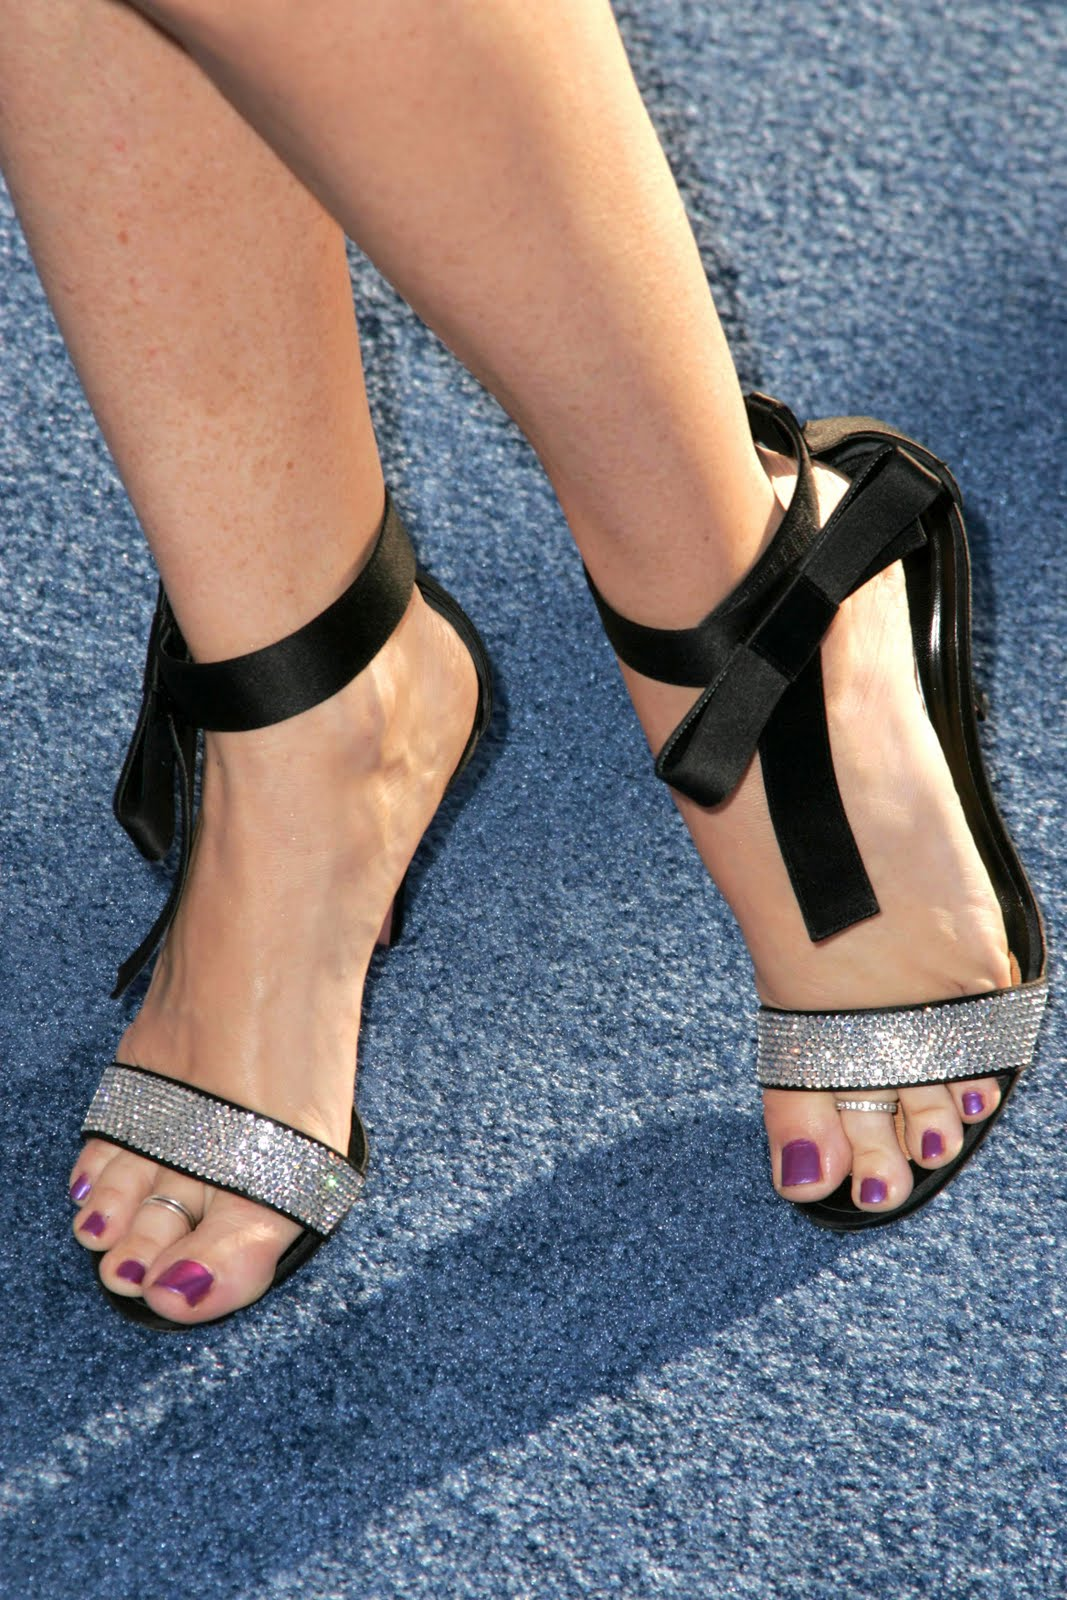 Celebrity Feet Nude Photos 36